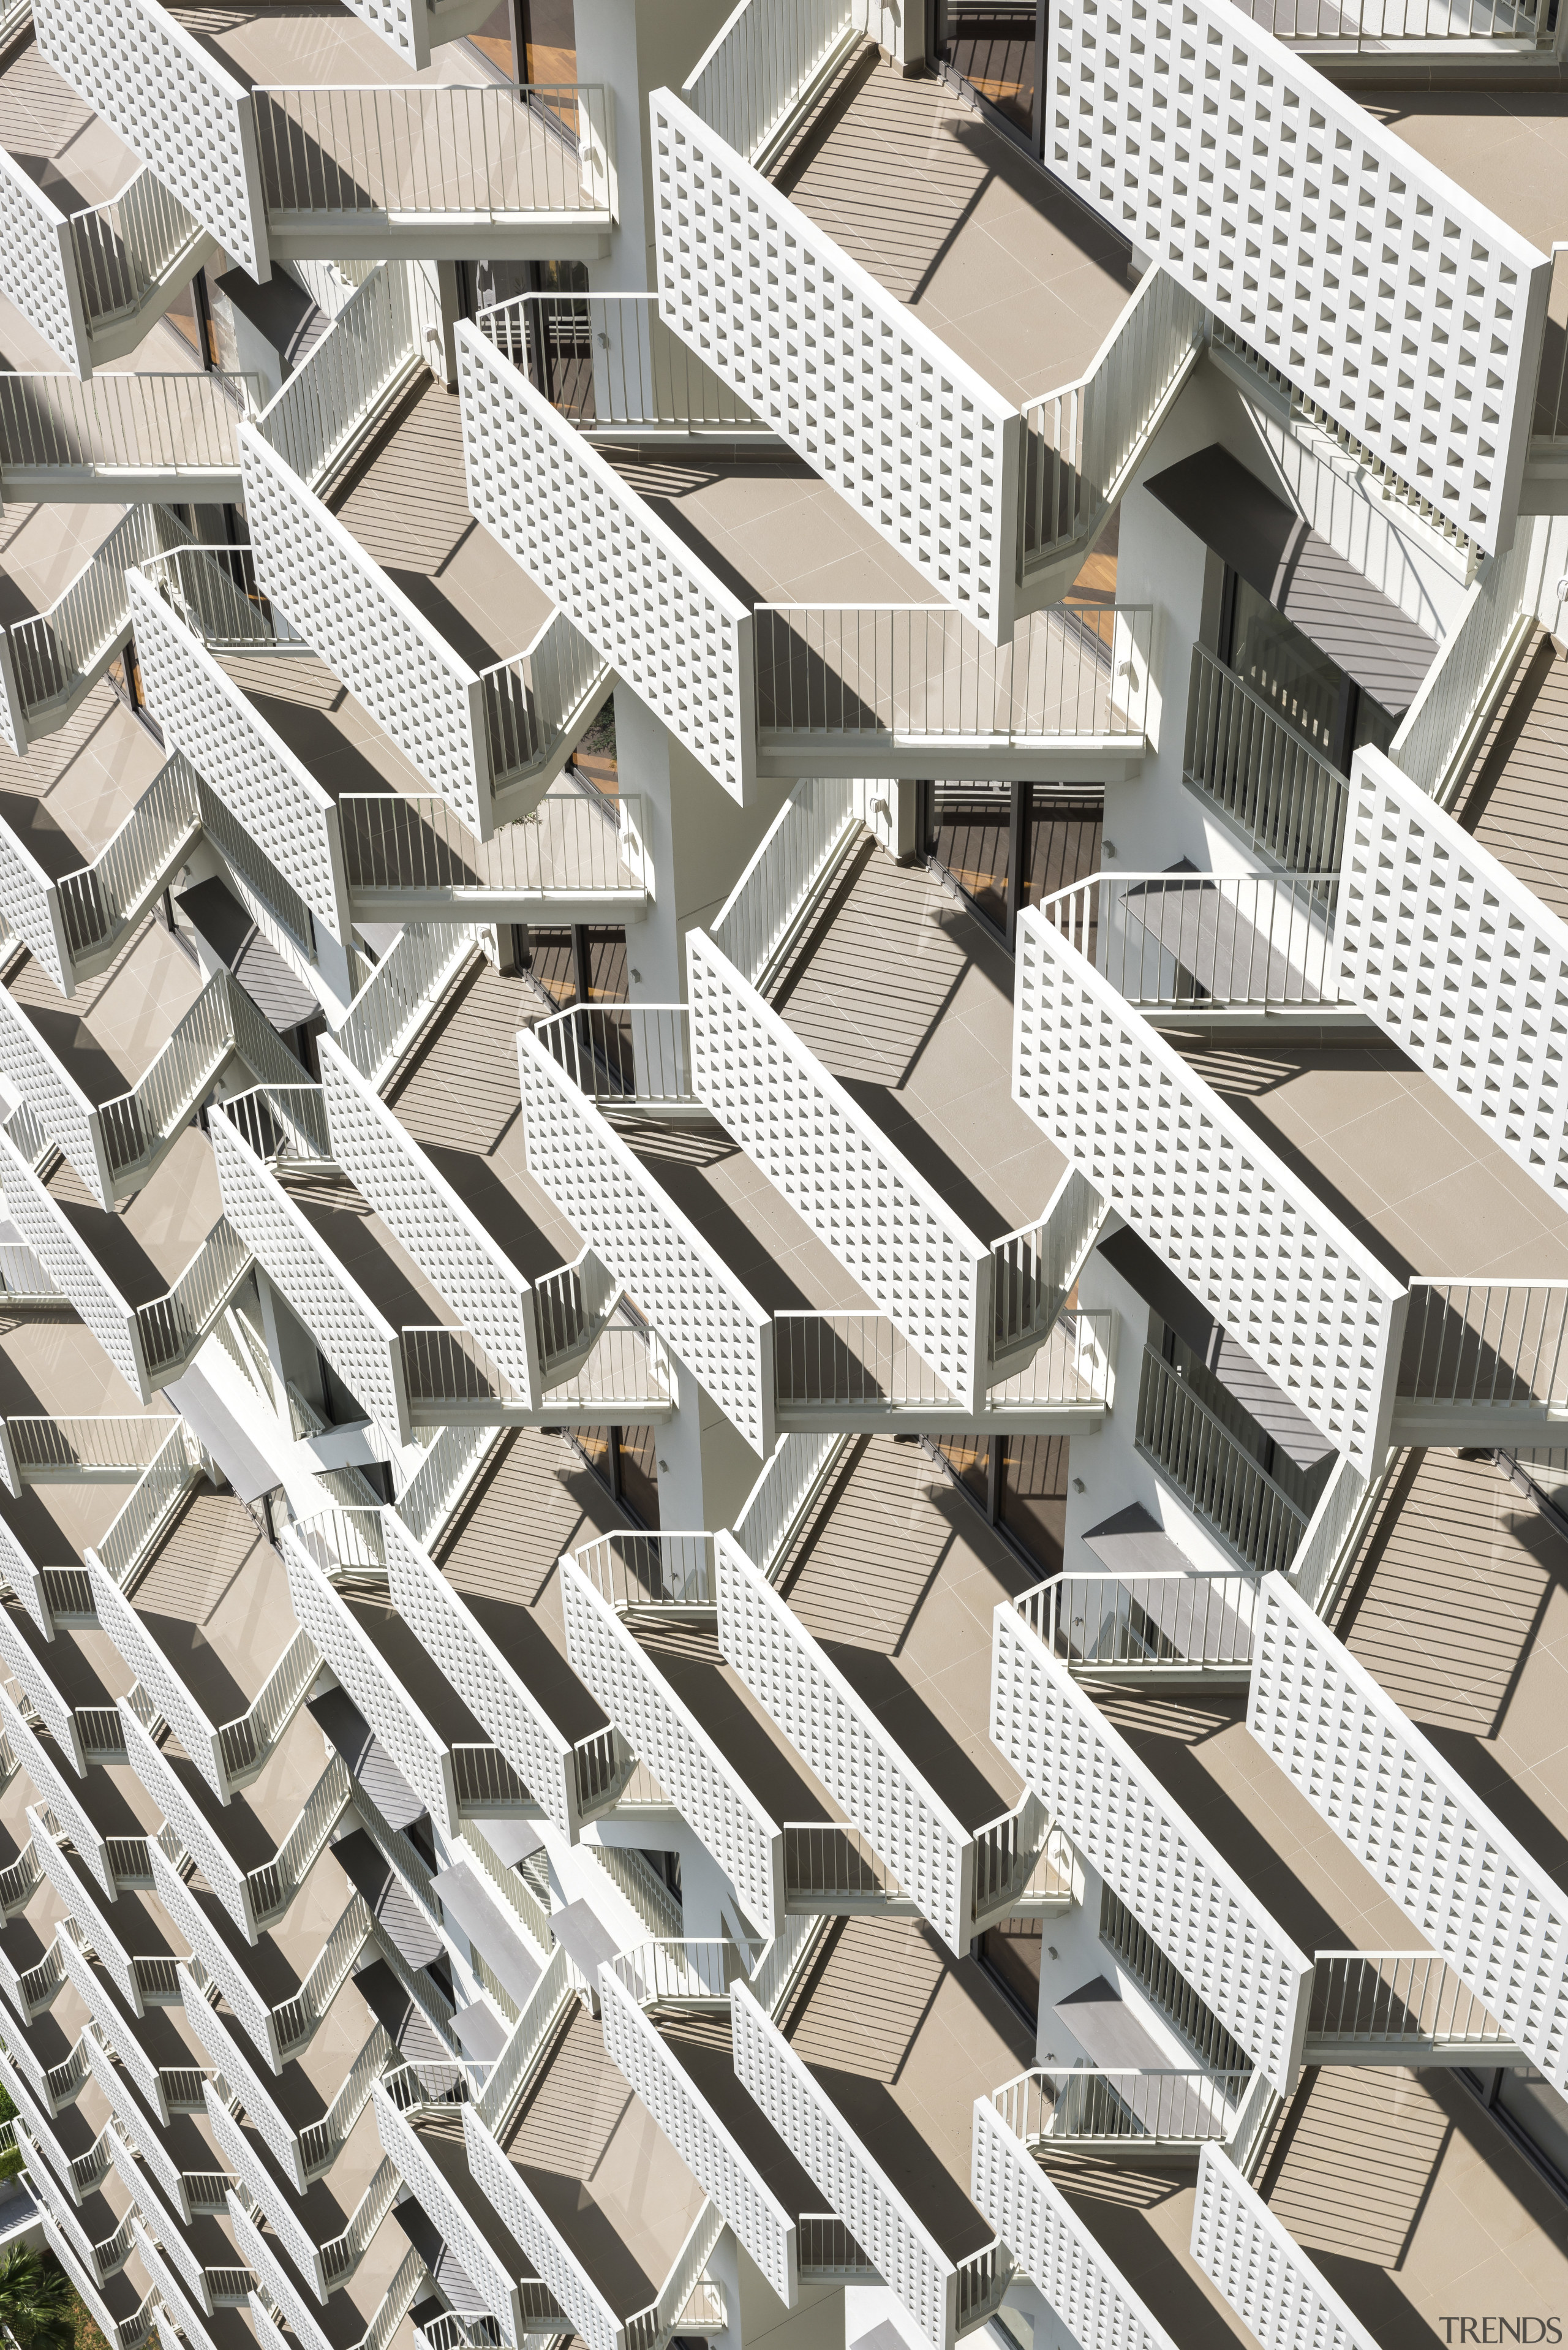 Alternating balconies allow more light and height for angle, architecture, building, condominium, facade, metropolis, pattern, residential area, structure, white